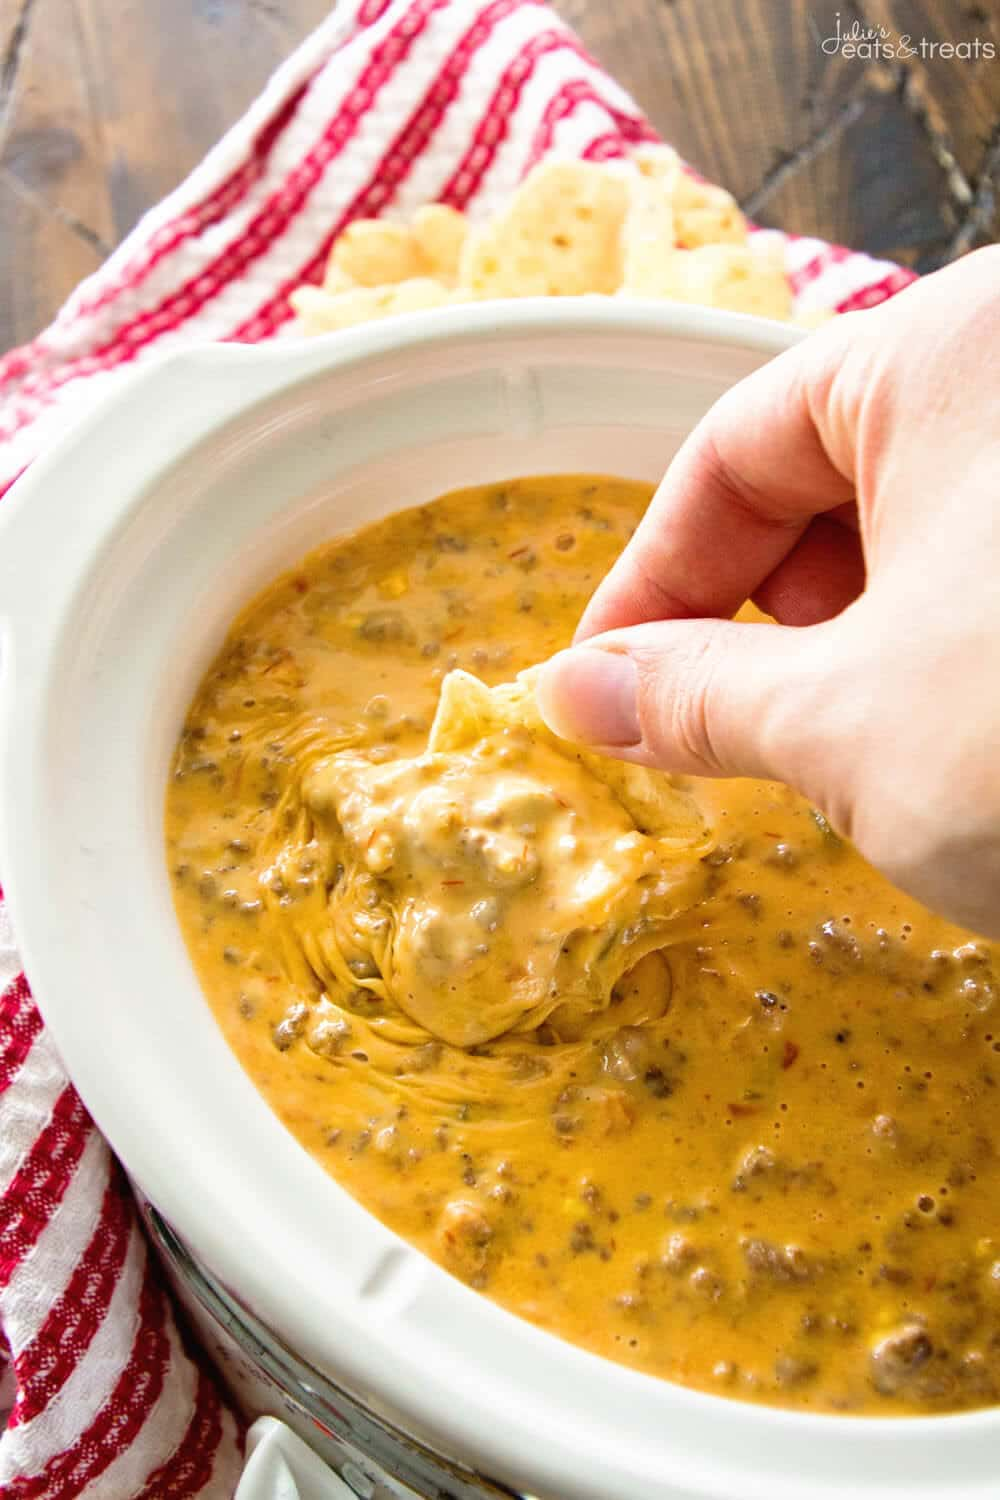 Spicy Crock Pot Cheesy Hamburger Dip ~ The BEST Cheese Dip Made in Your Slow Cooker! Perfect for a Party, Game Day or Just Because! This Appetizer Will Have You Coming Back for More!